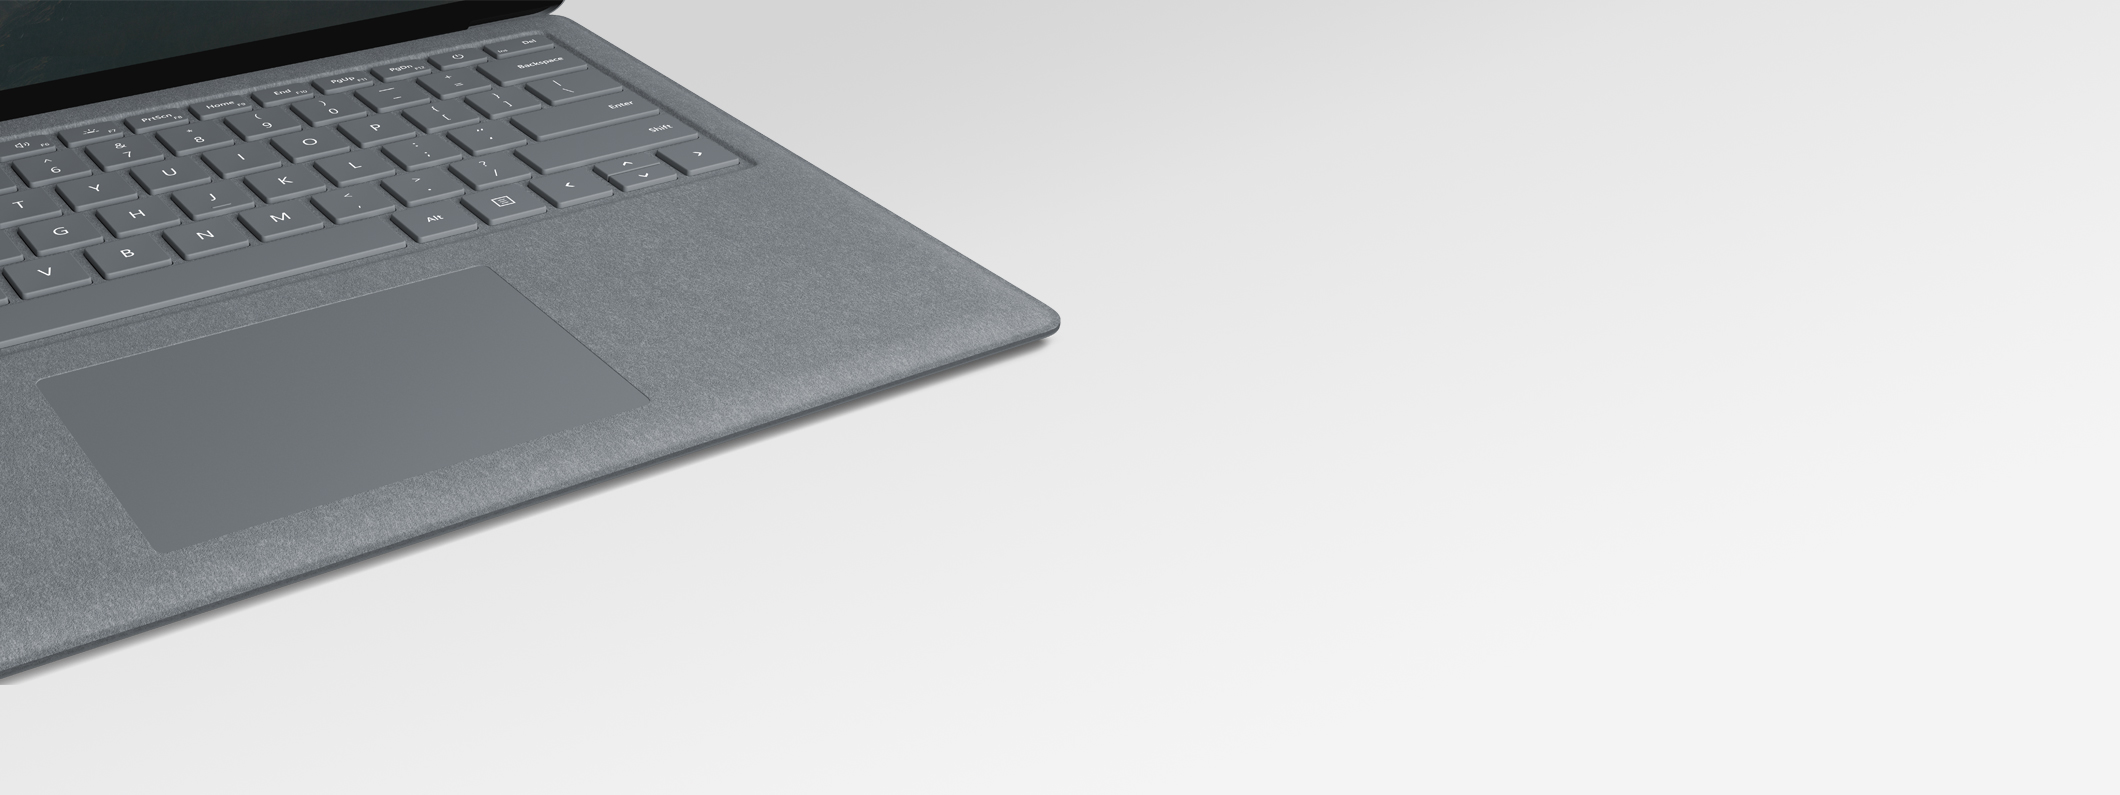 Teclado e trackpad do Surface Laptop 2